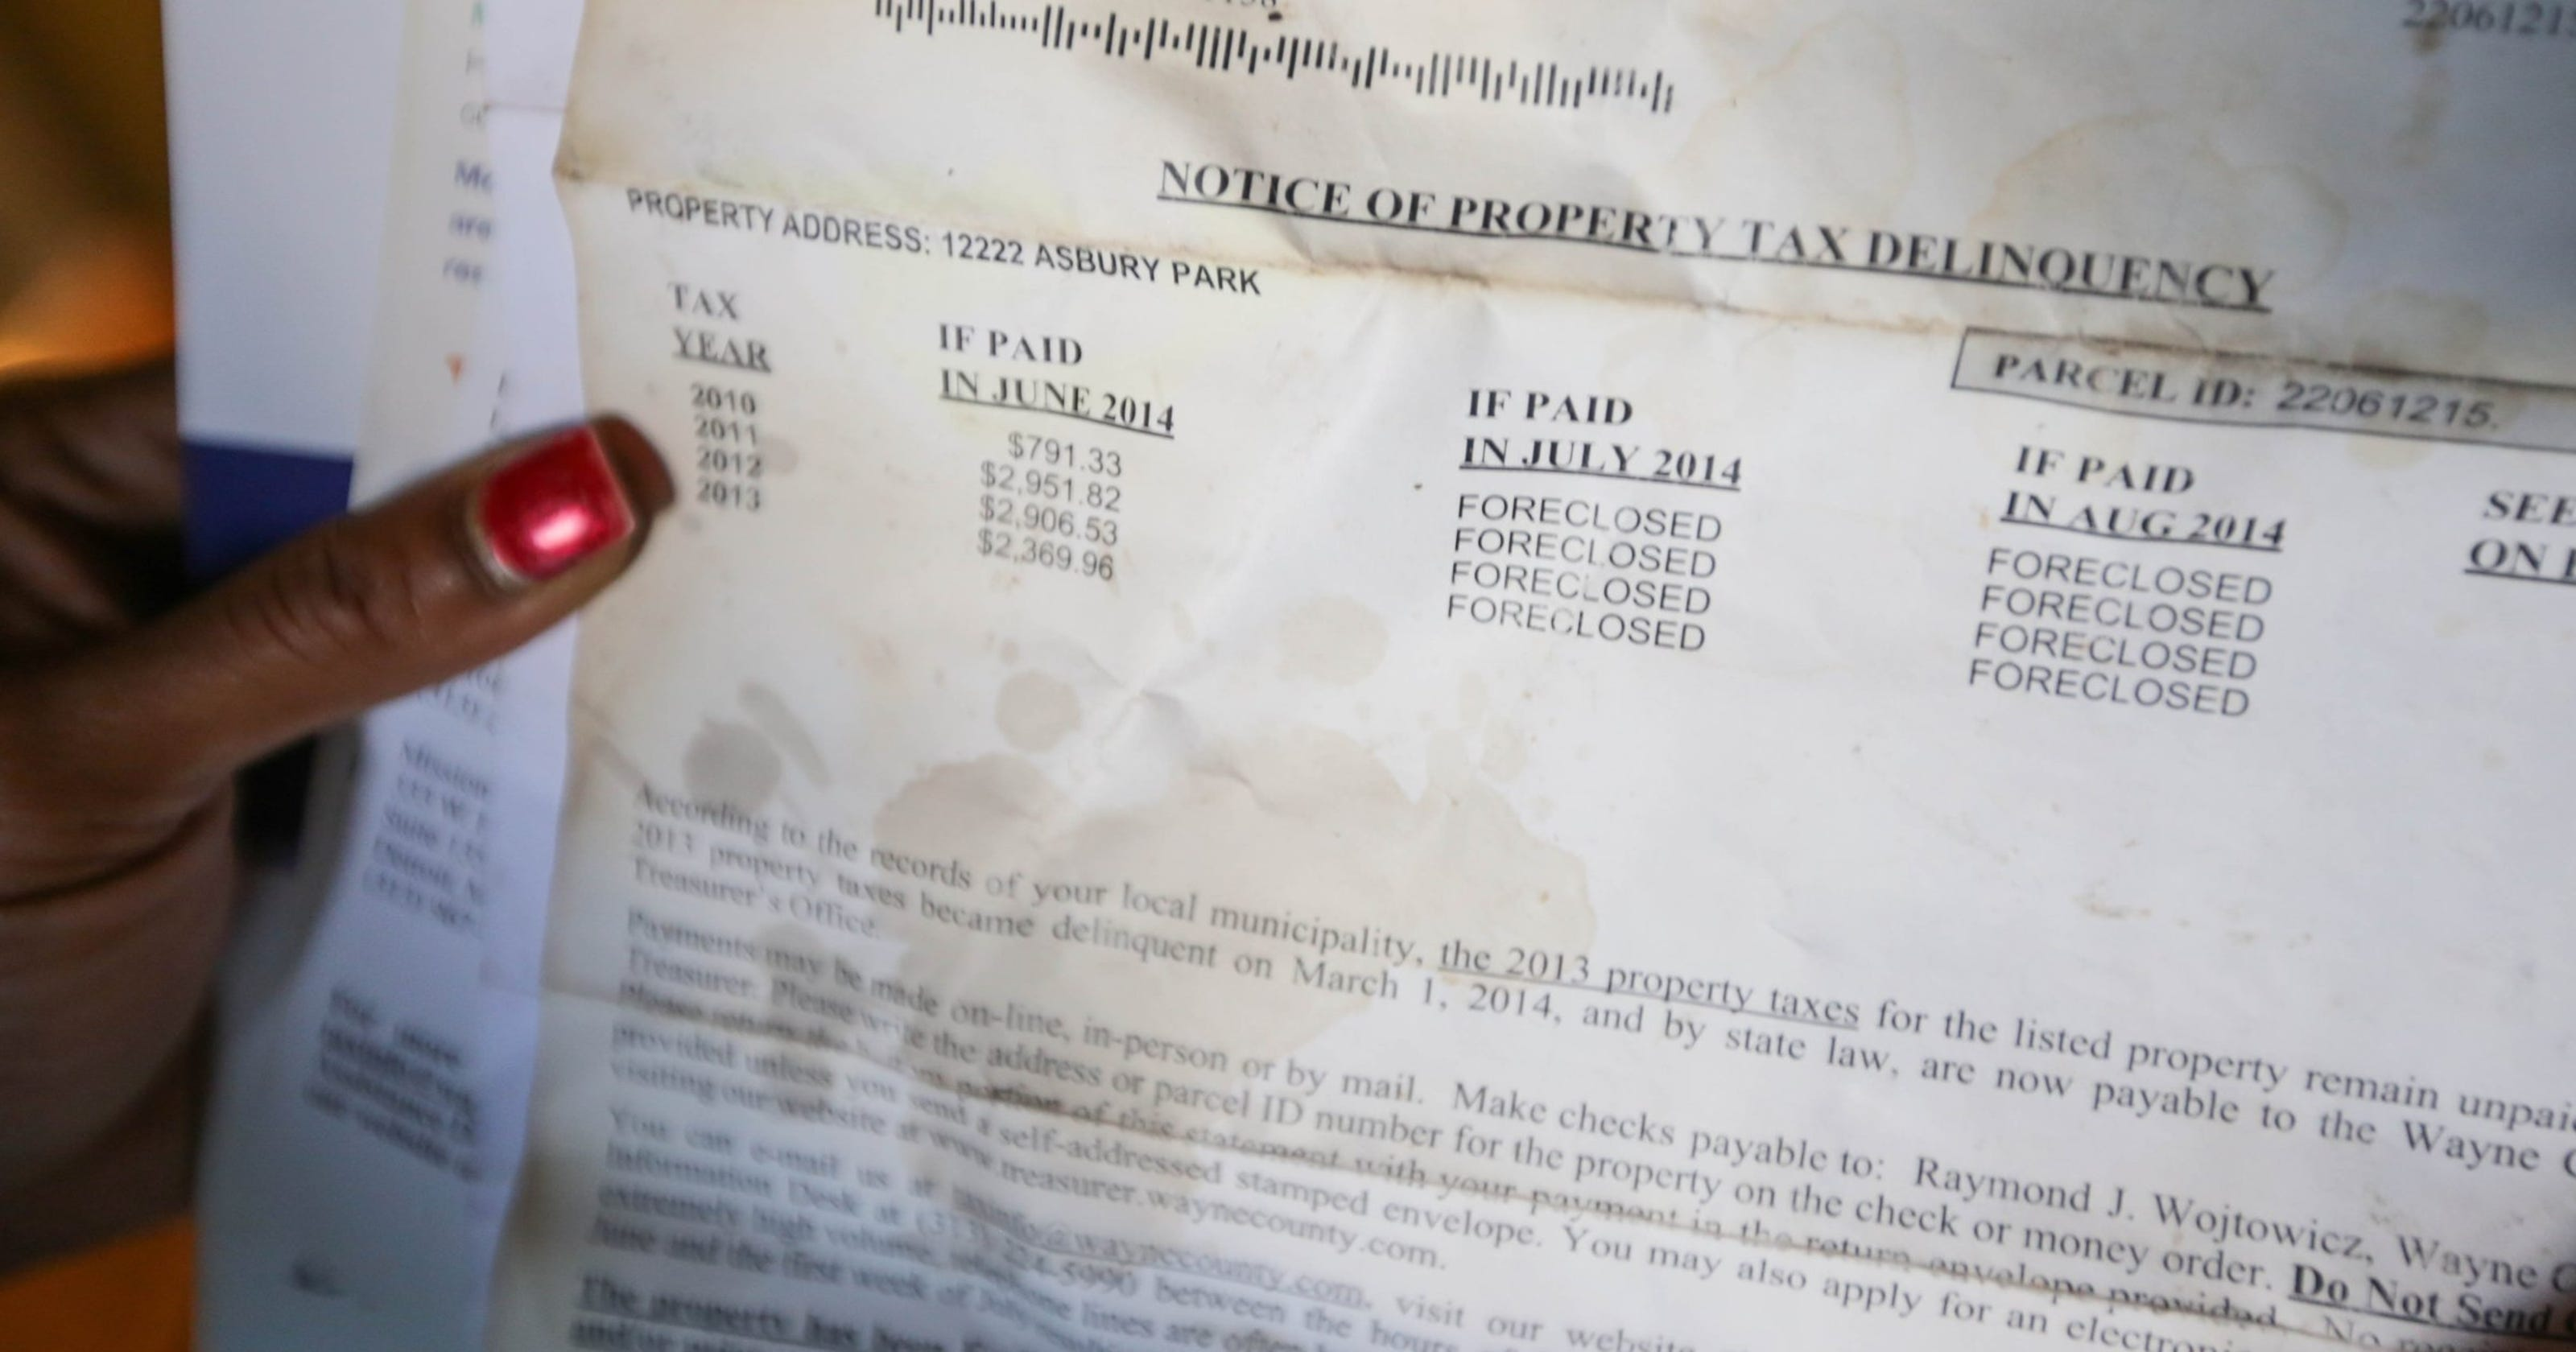 Wayne Co  residents get 5 more months to pay tax debts